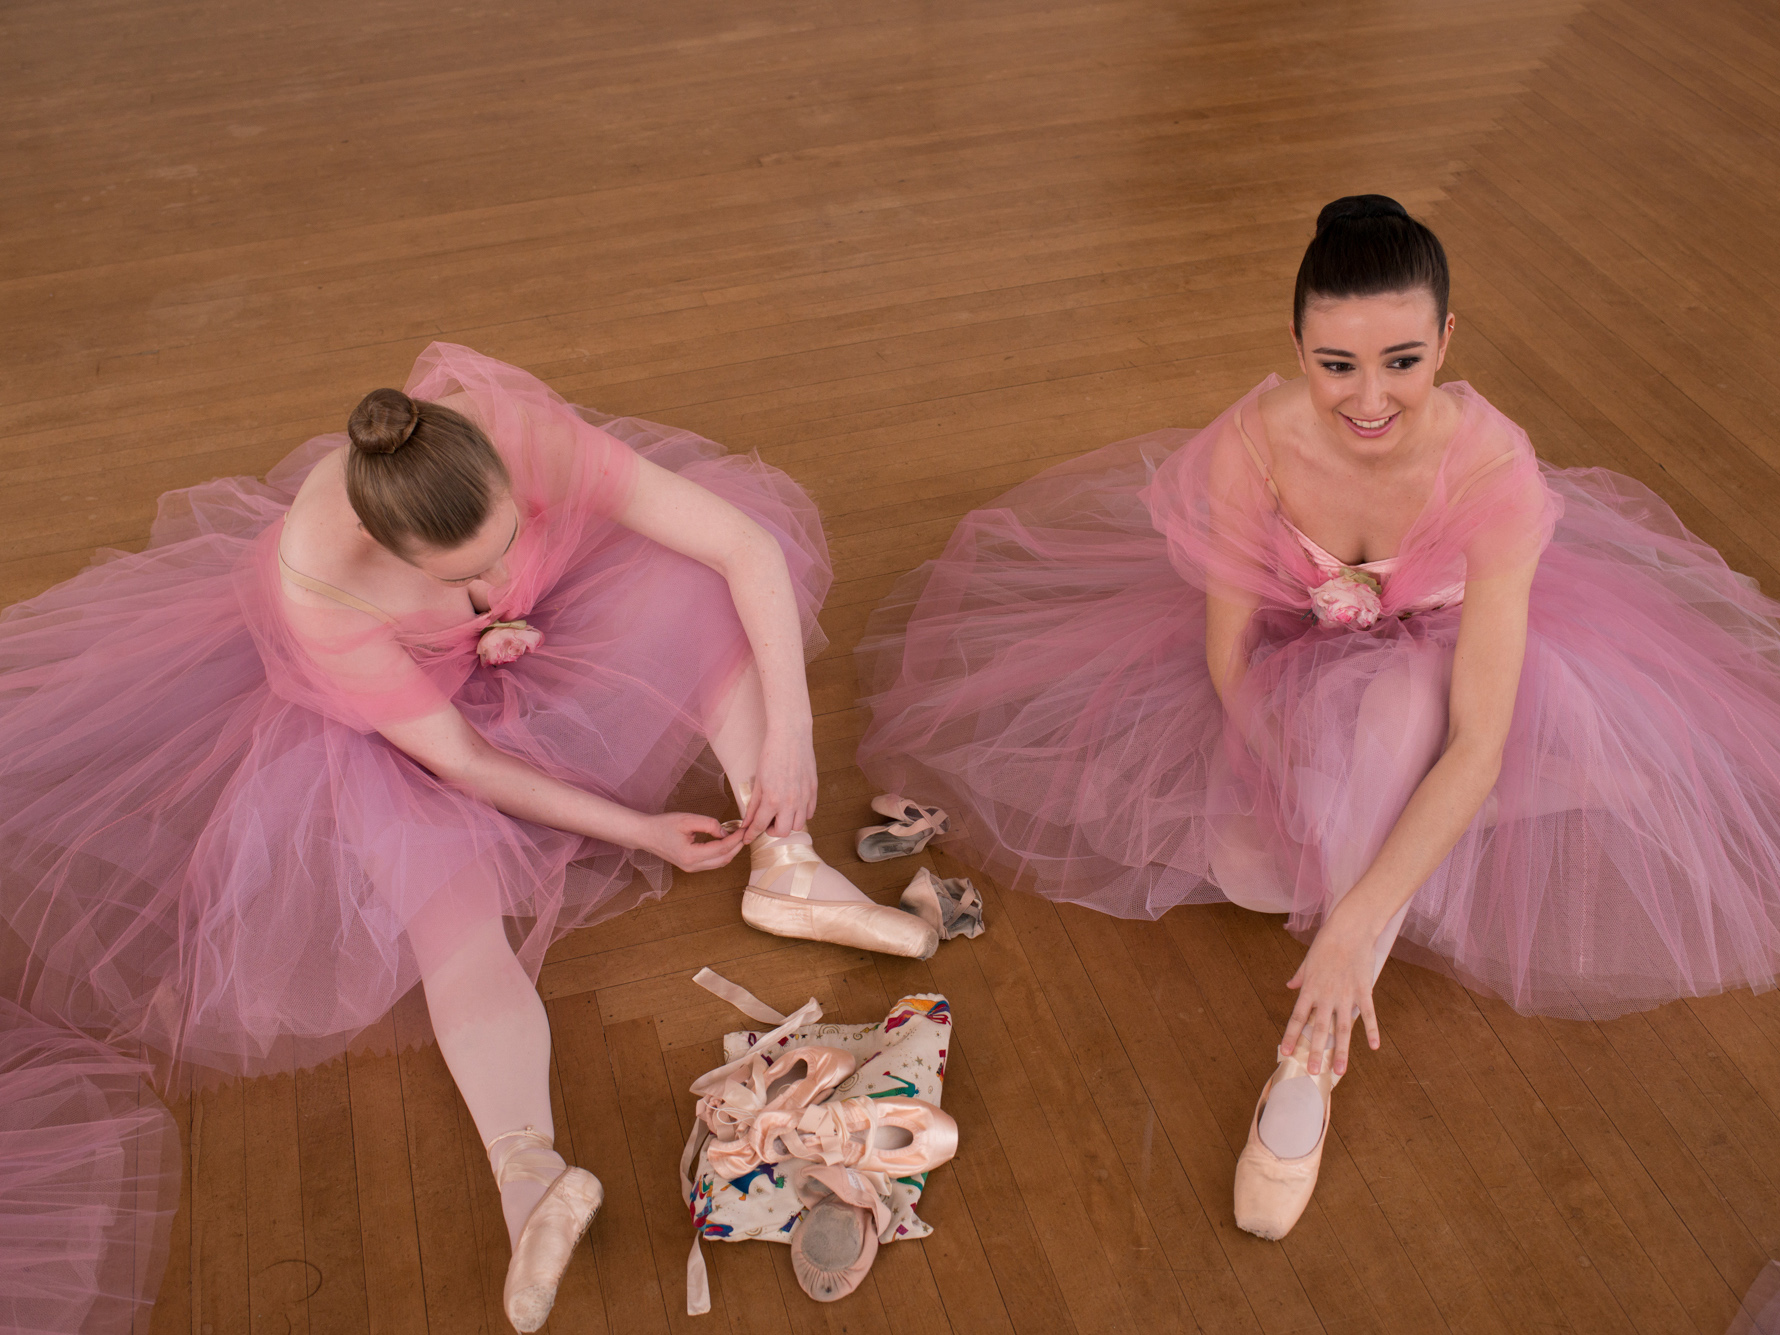 2 girls in traditional pink tutus lace up their pointe shoes